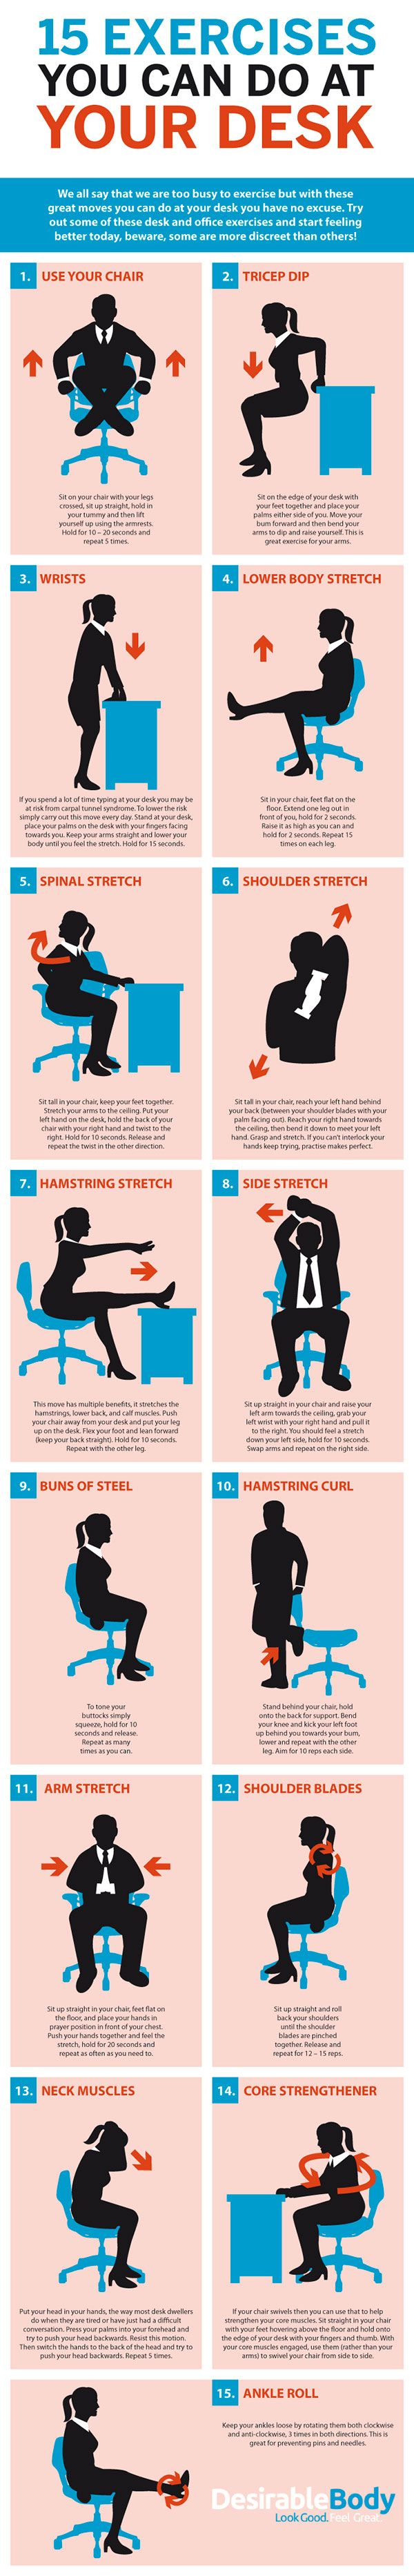 this graphic shows bunch of desk based exercises for the office rh pinterest com